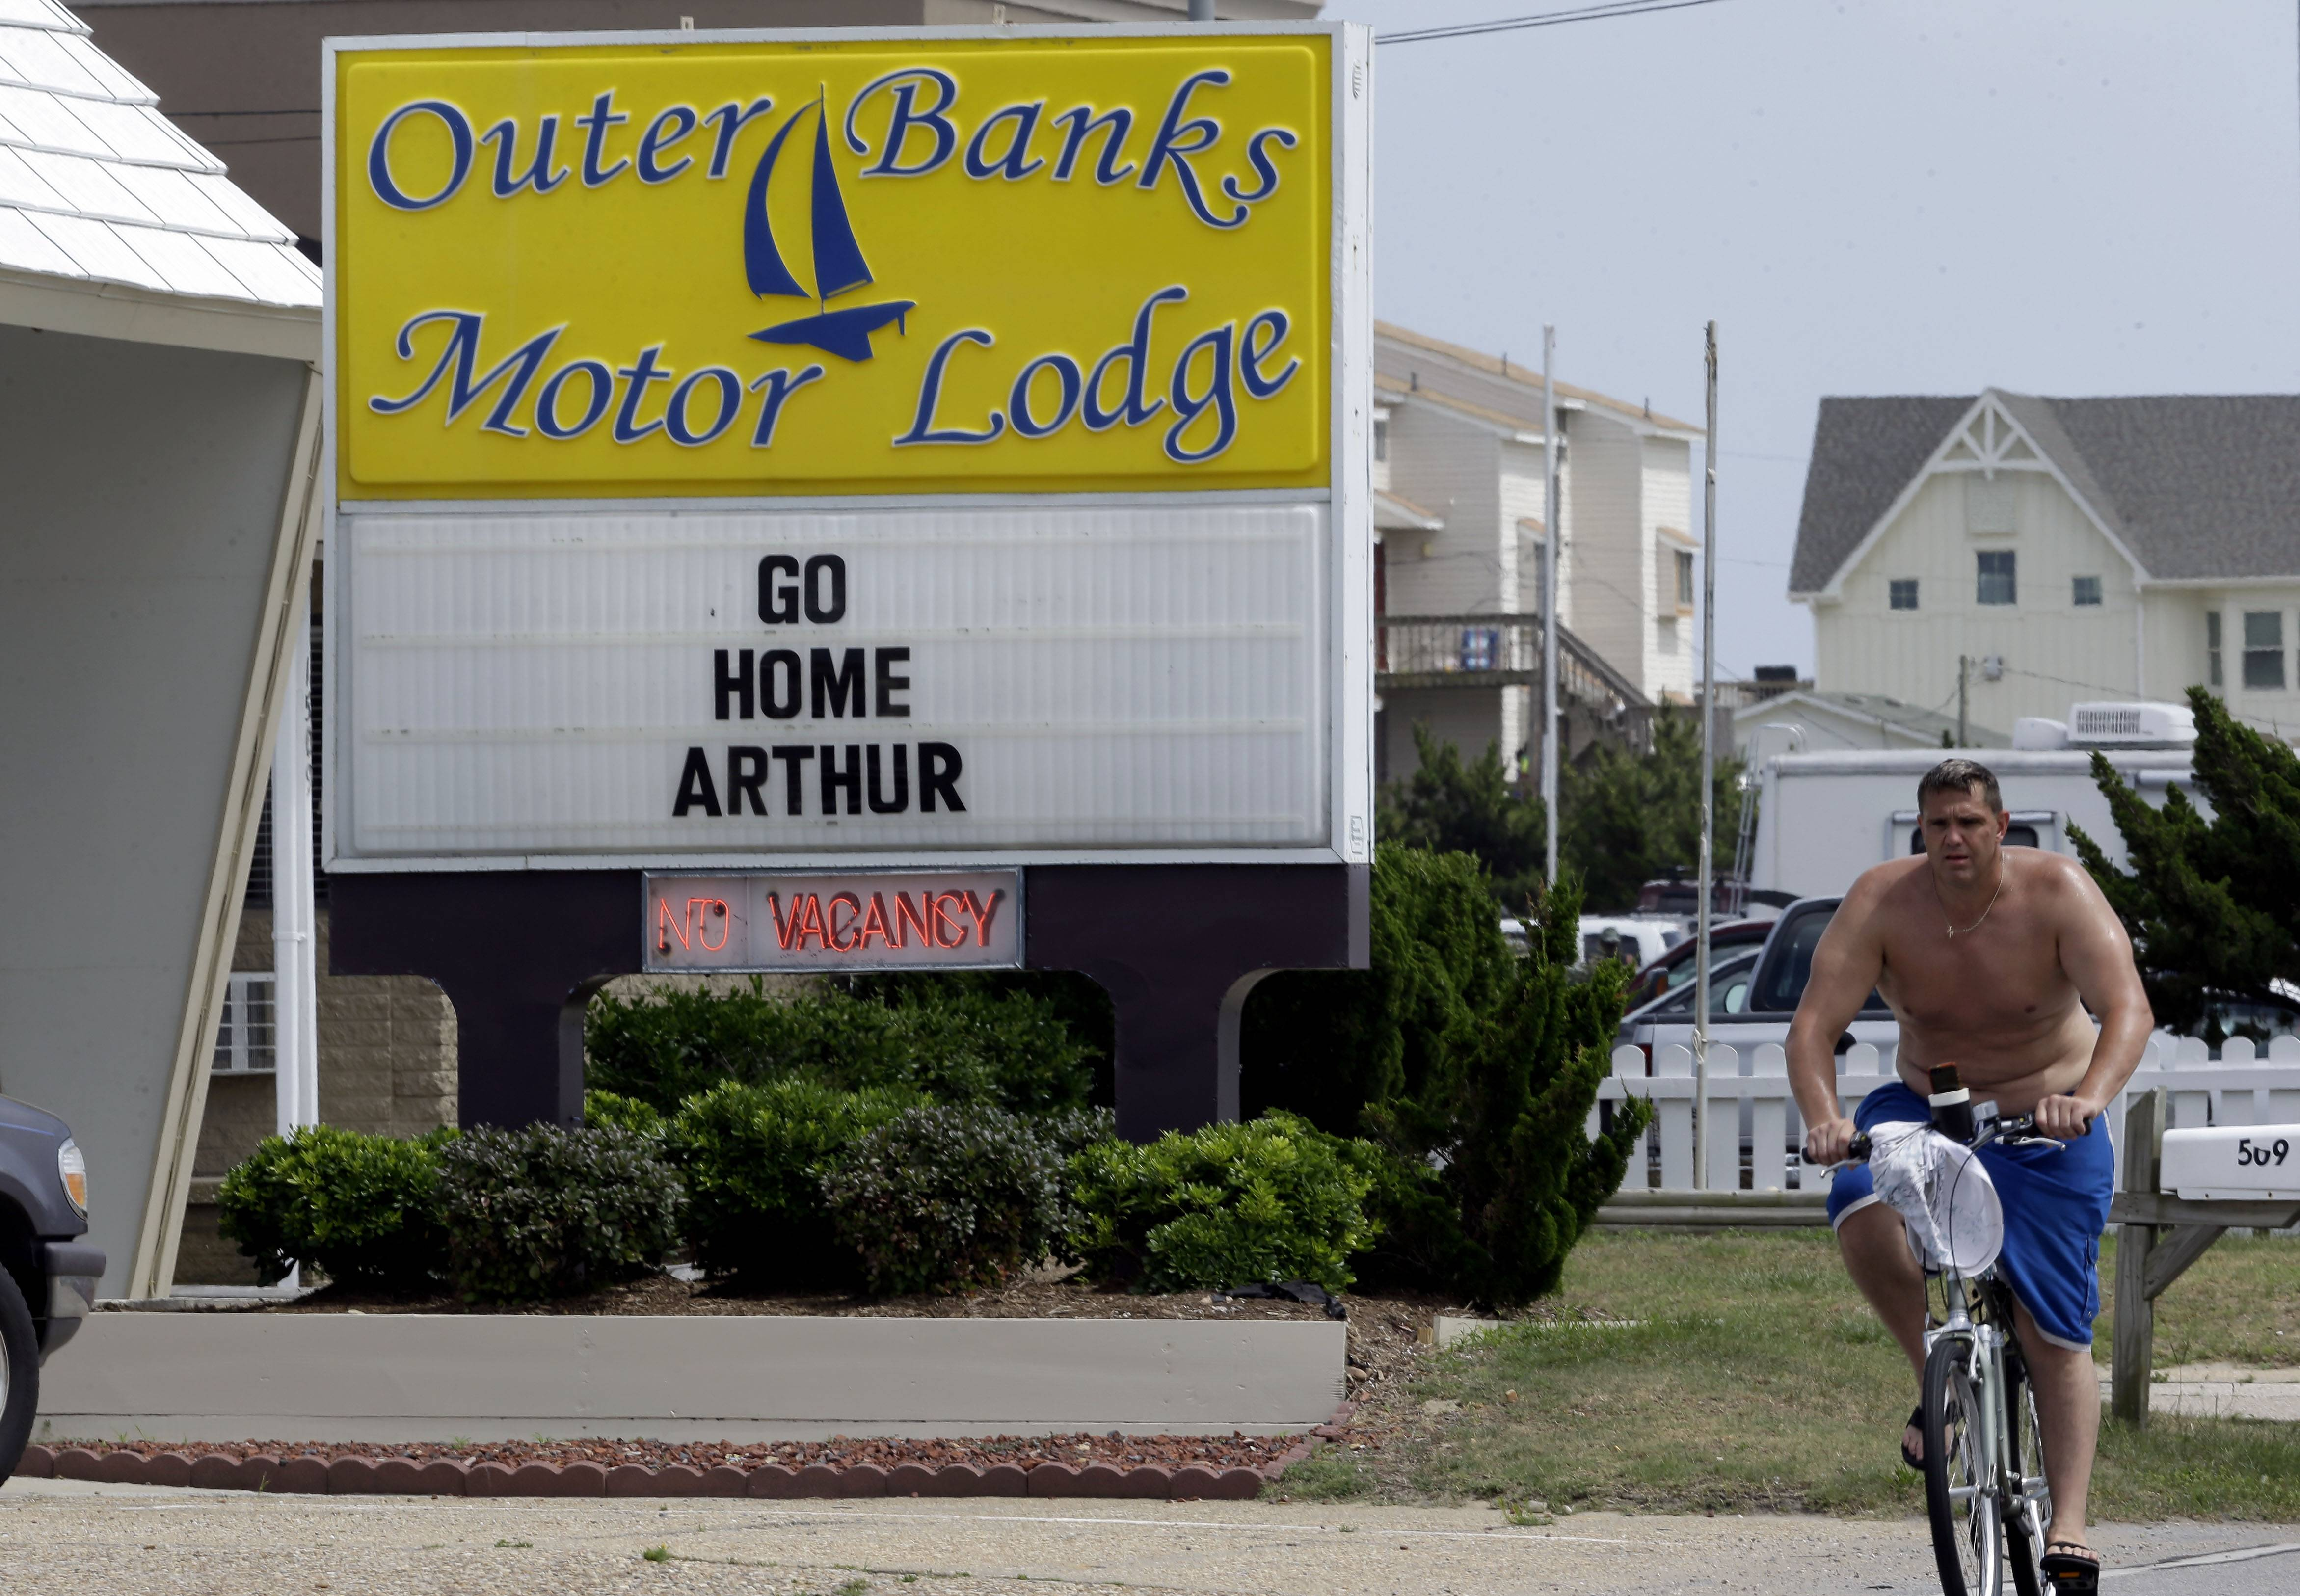 A sign at the Outer Banks Motor Lodge displays a message in Kill Devil Hills, N.C., Thursday. Hurricane Arthur is forecast to pass by Hatteras Island on Friday morning. The island is under mandatory evacuation orders.